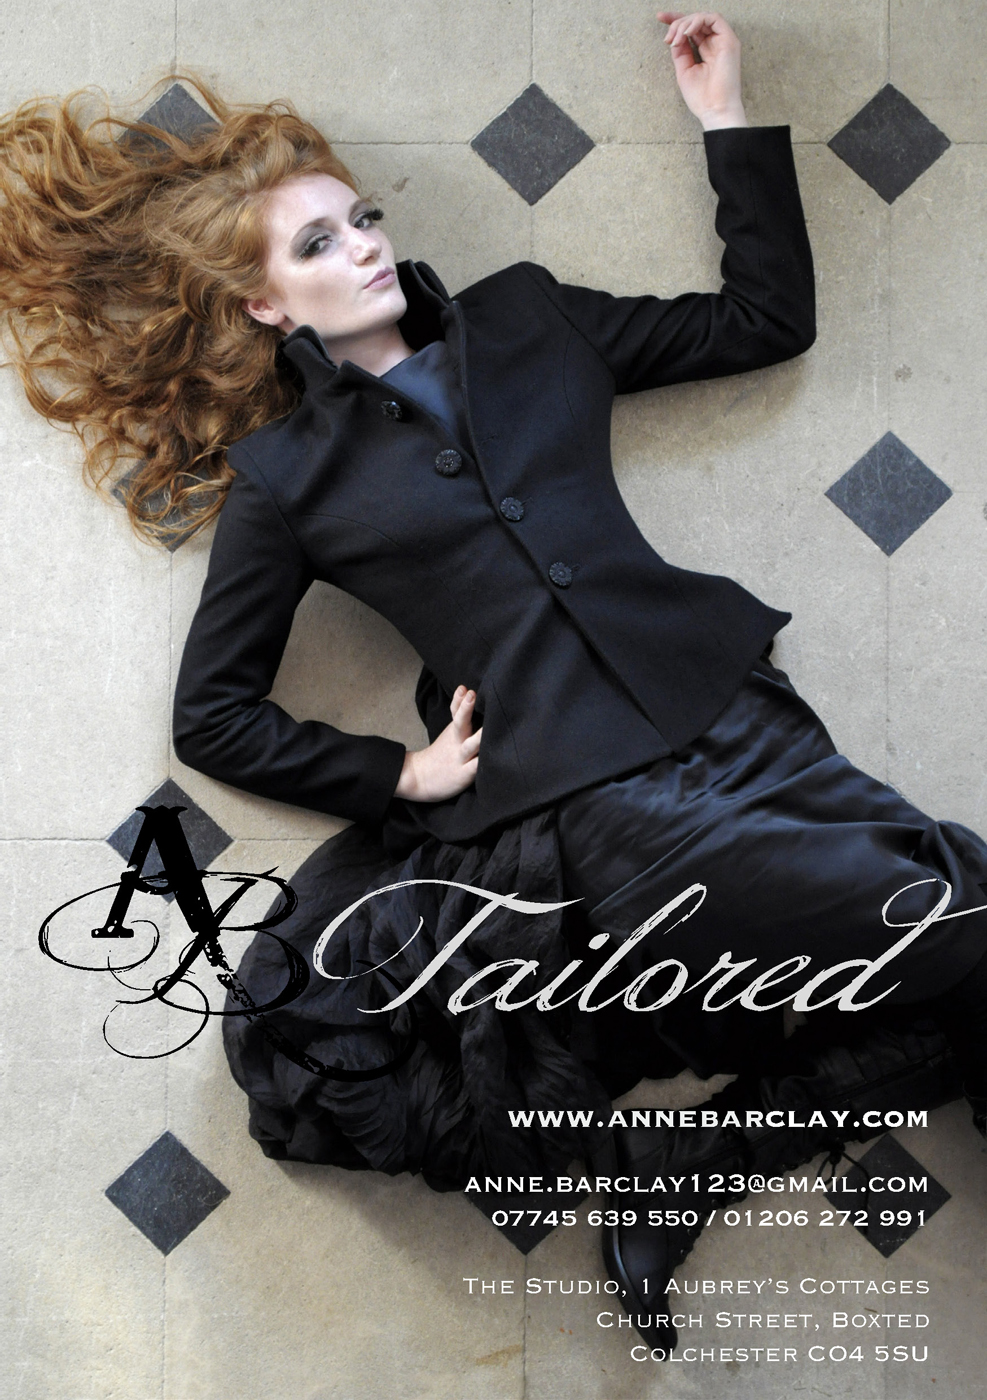 Anne Barclay Tailored, simply stylish